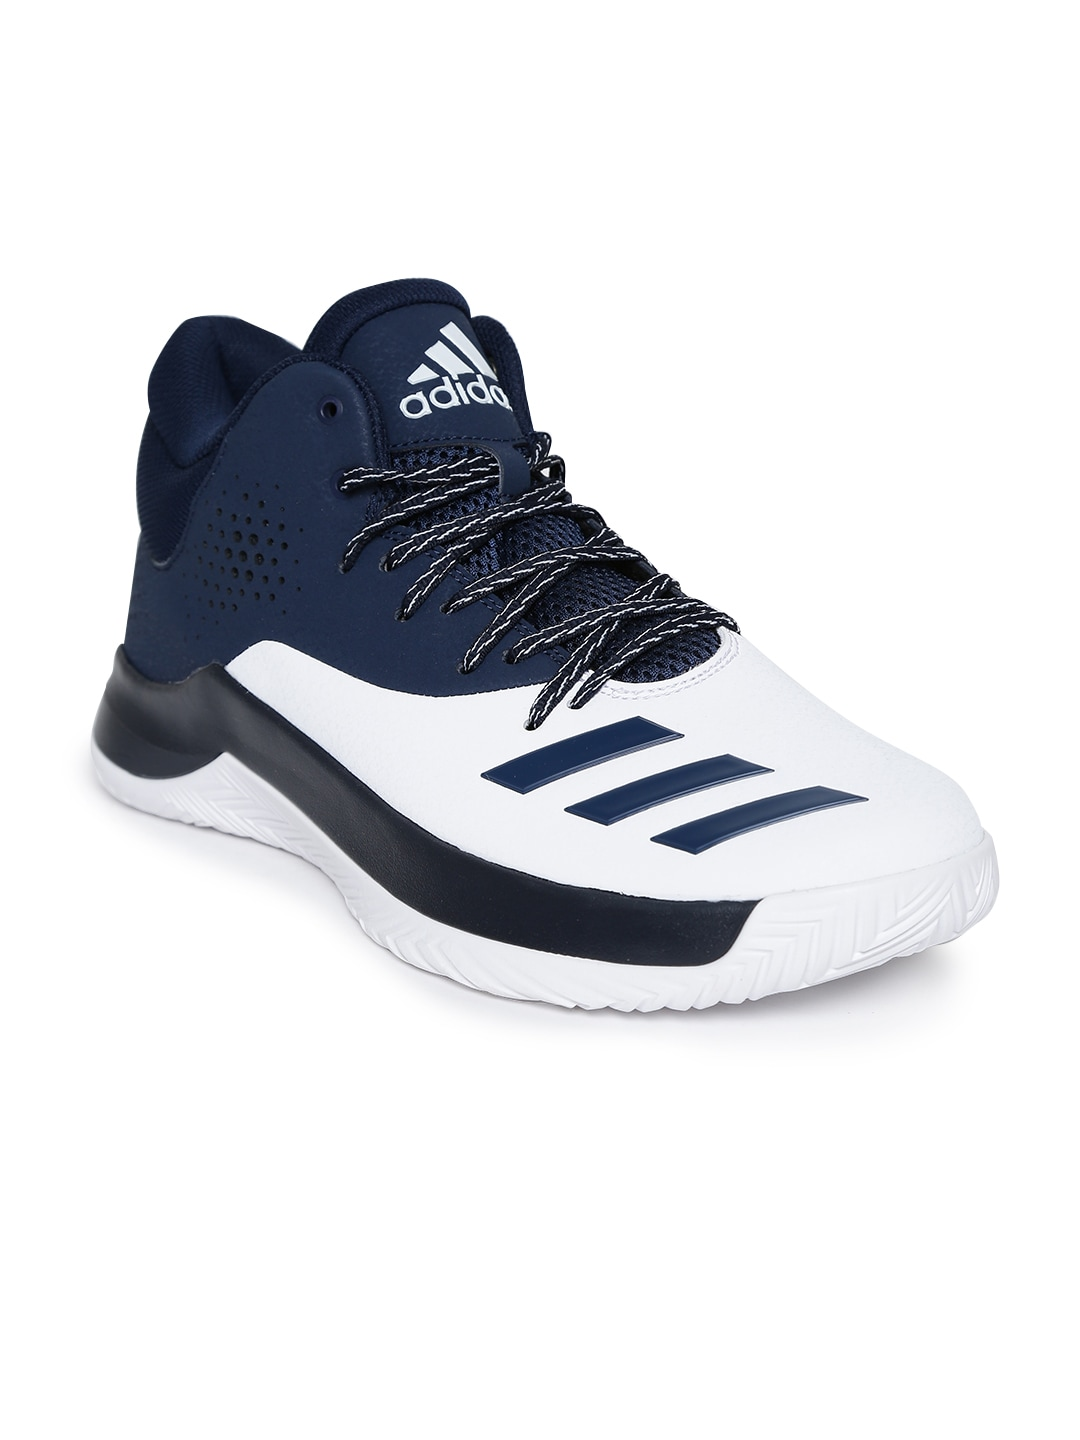 Adidas Shoes For Womens India